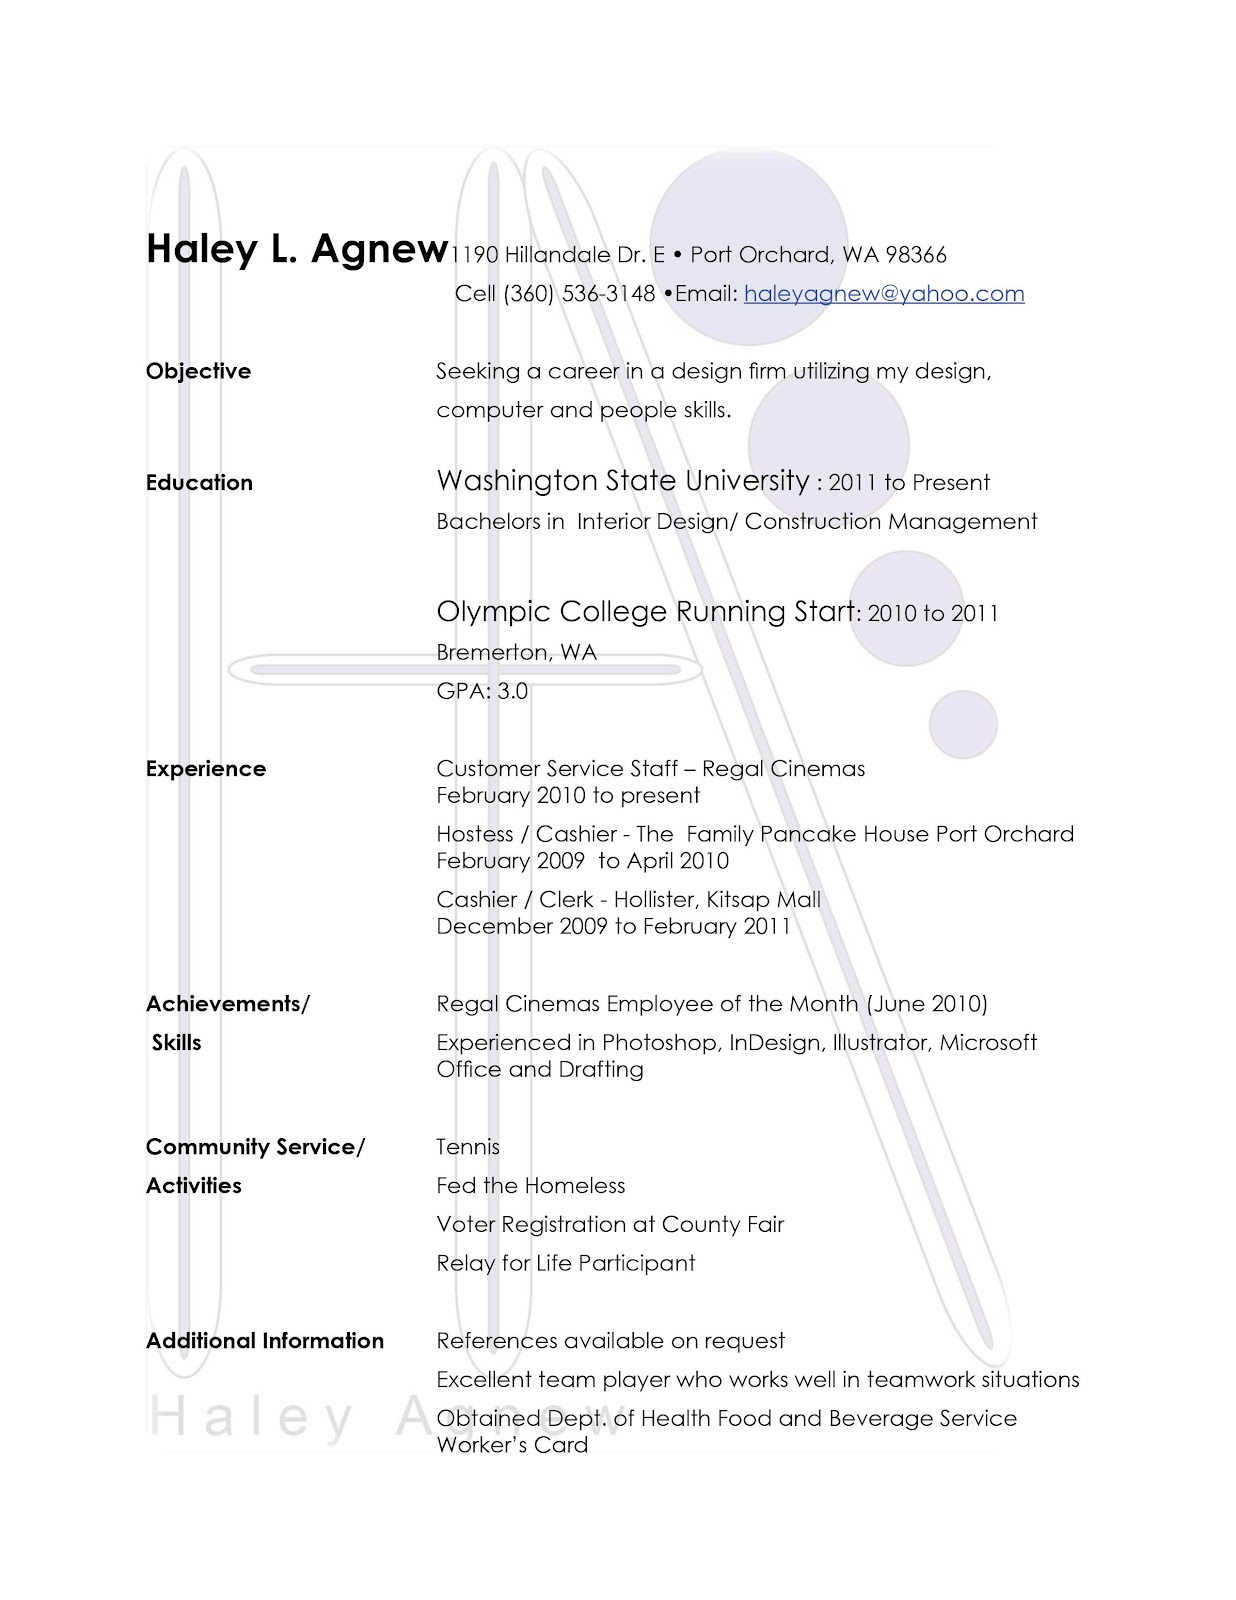 Haley Interior Design Resume